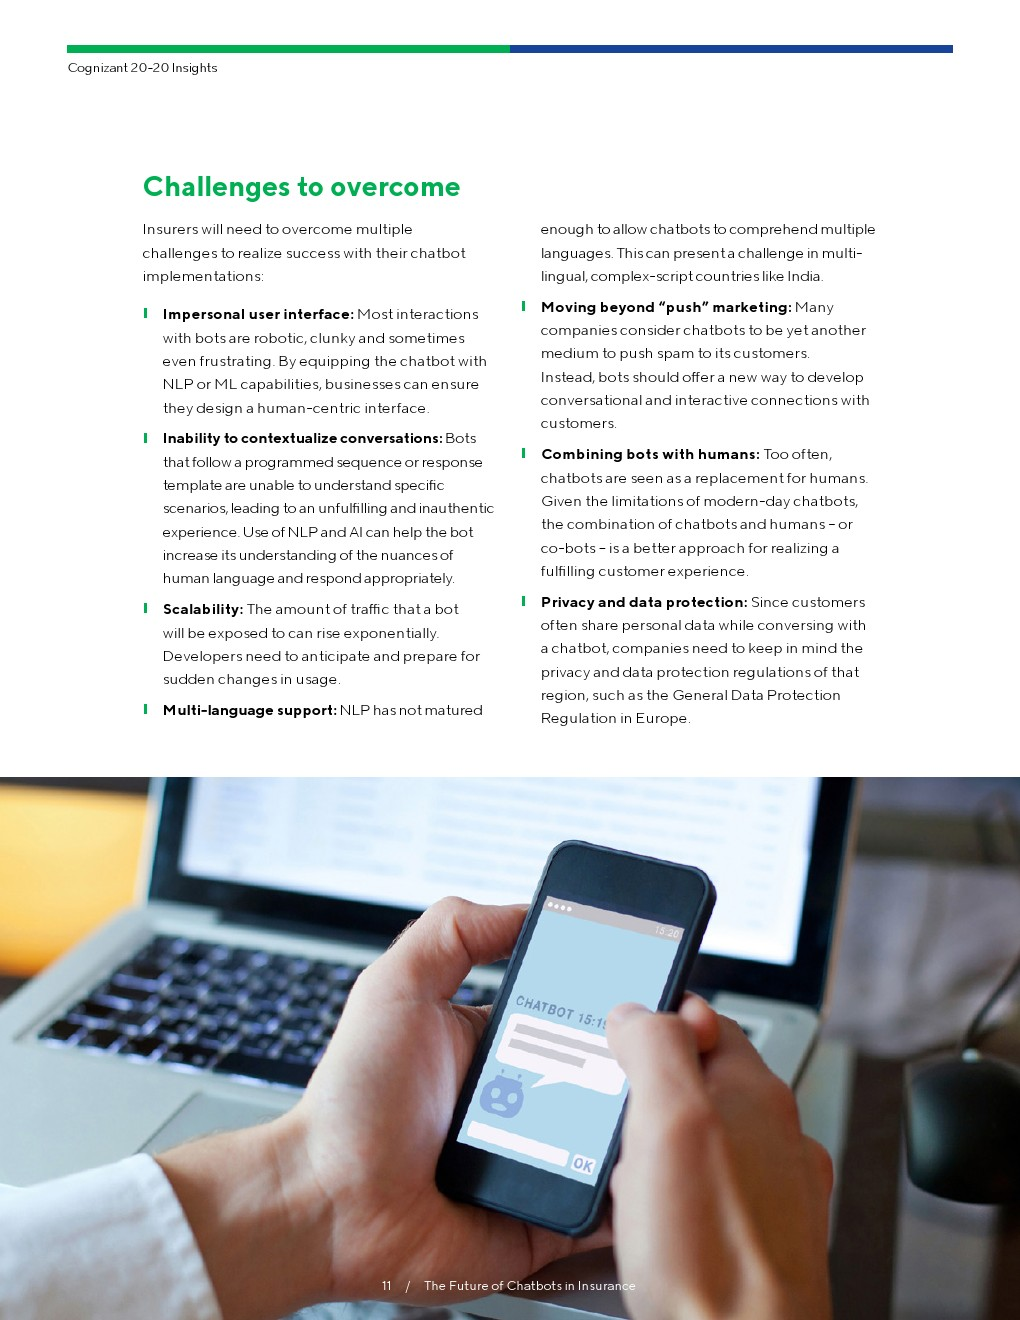 Cognizant: the future of chat robot in insurance industry